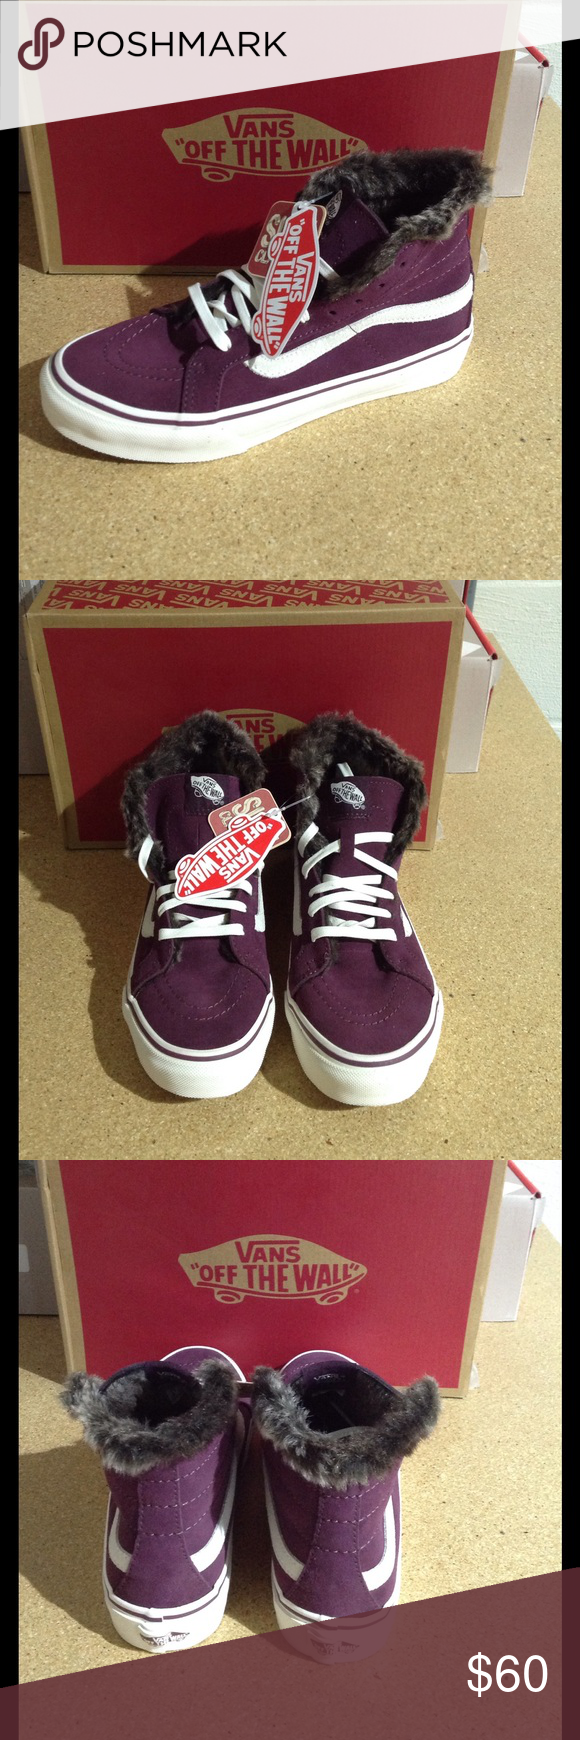 cbc26c44a82ef1 Vans SK8-Hi Slim Sneaker These Vans SK8-Slim are stylish with faux fur  inside and comfortable! (PM-S0227) Vans Shoes Sneakers